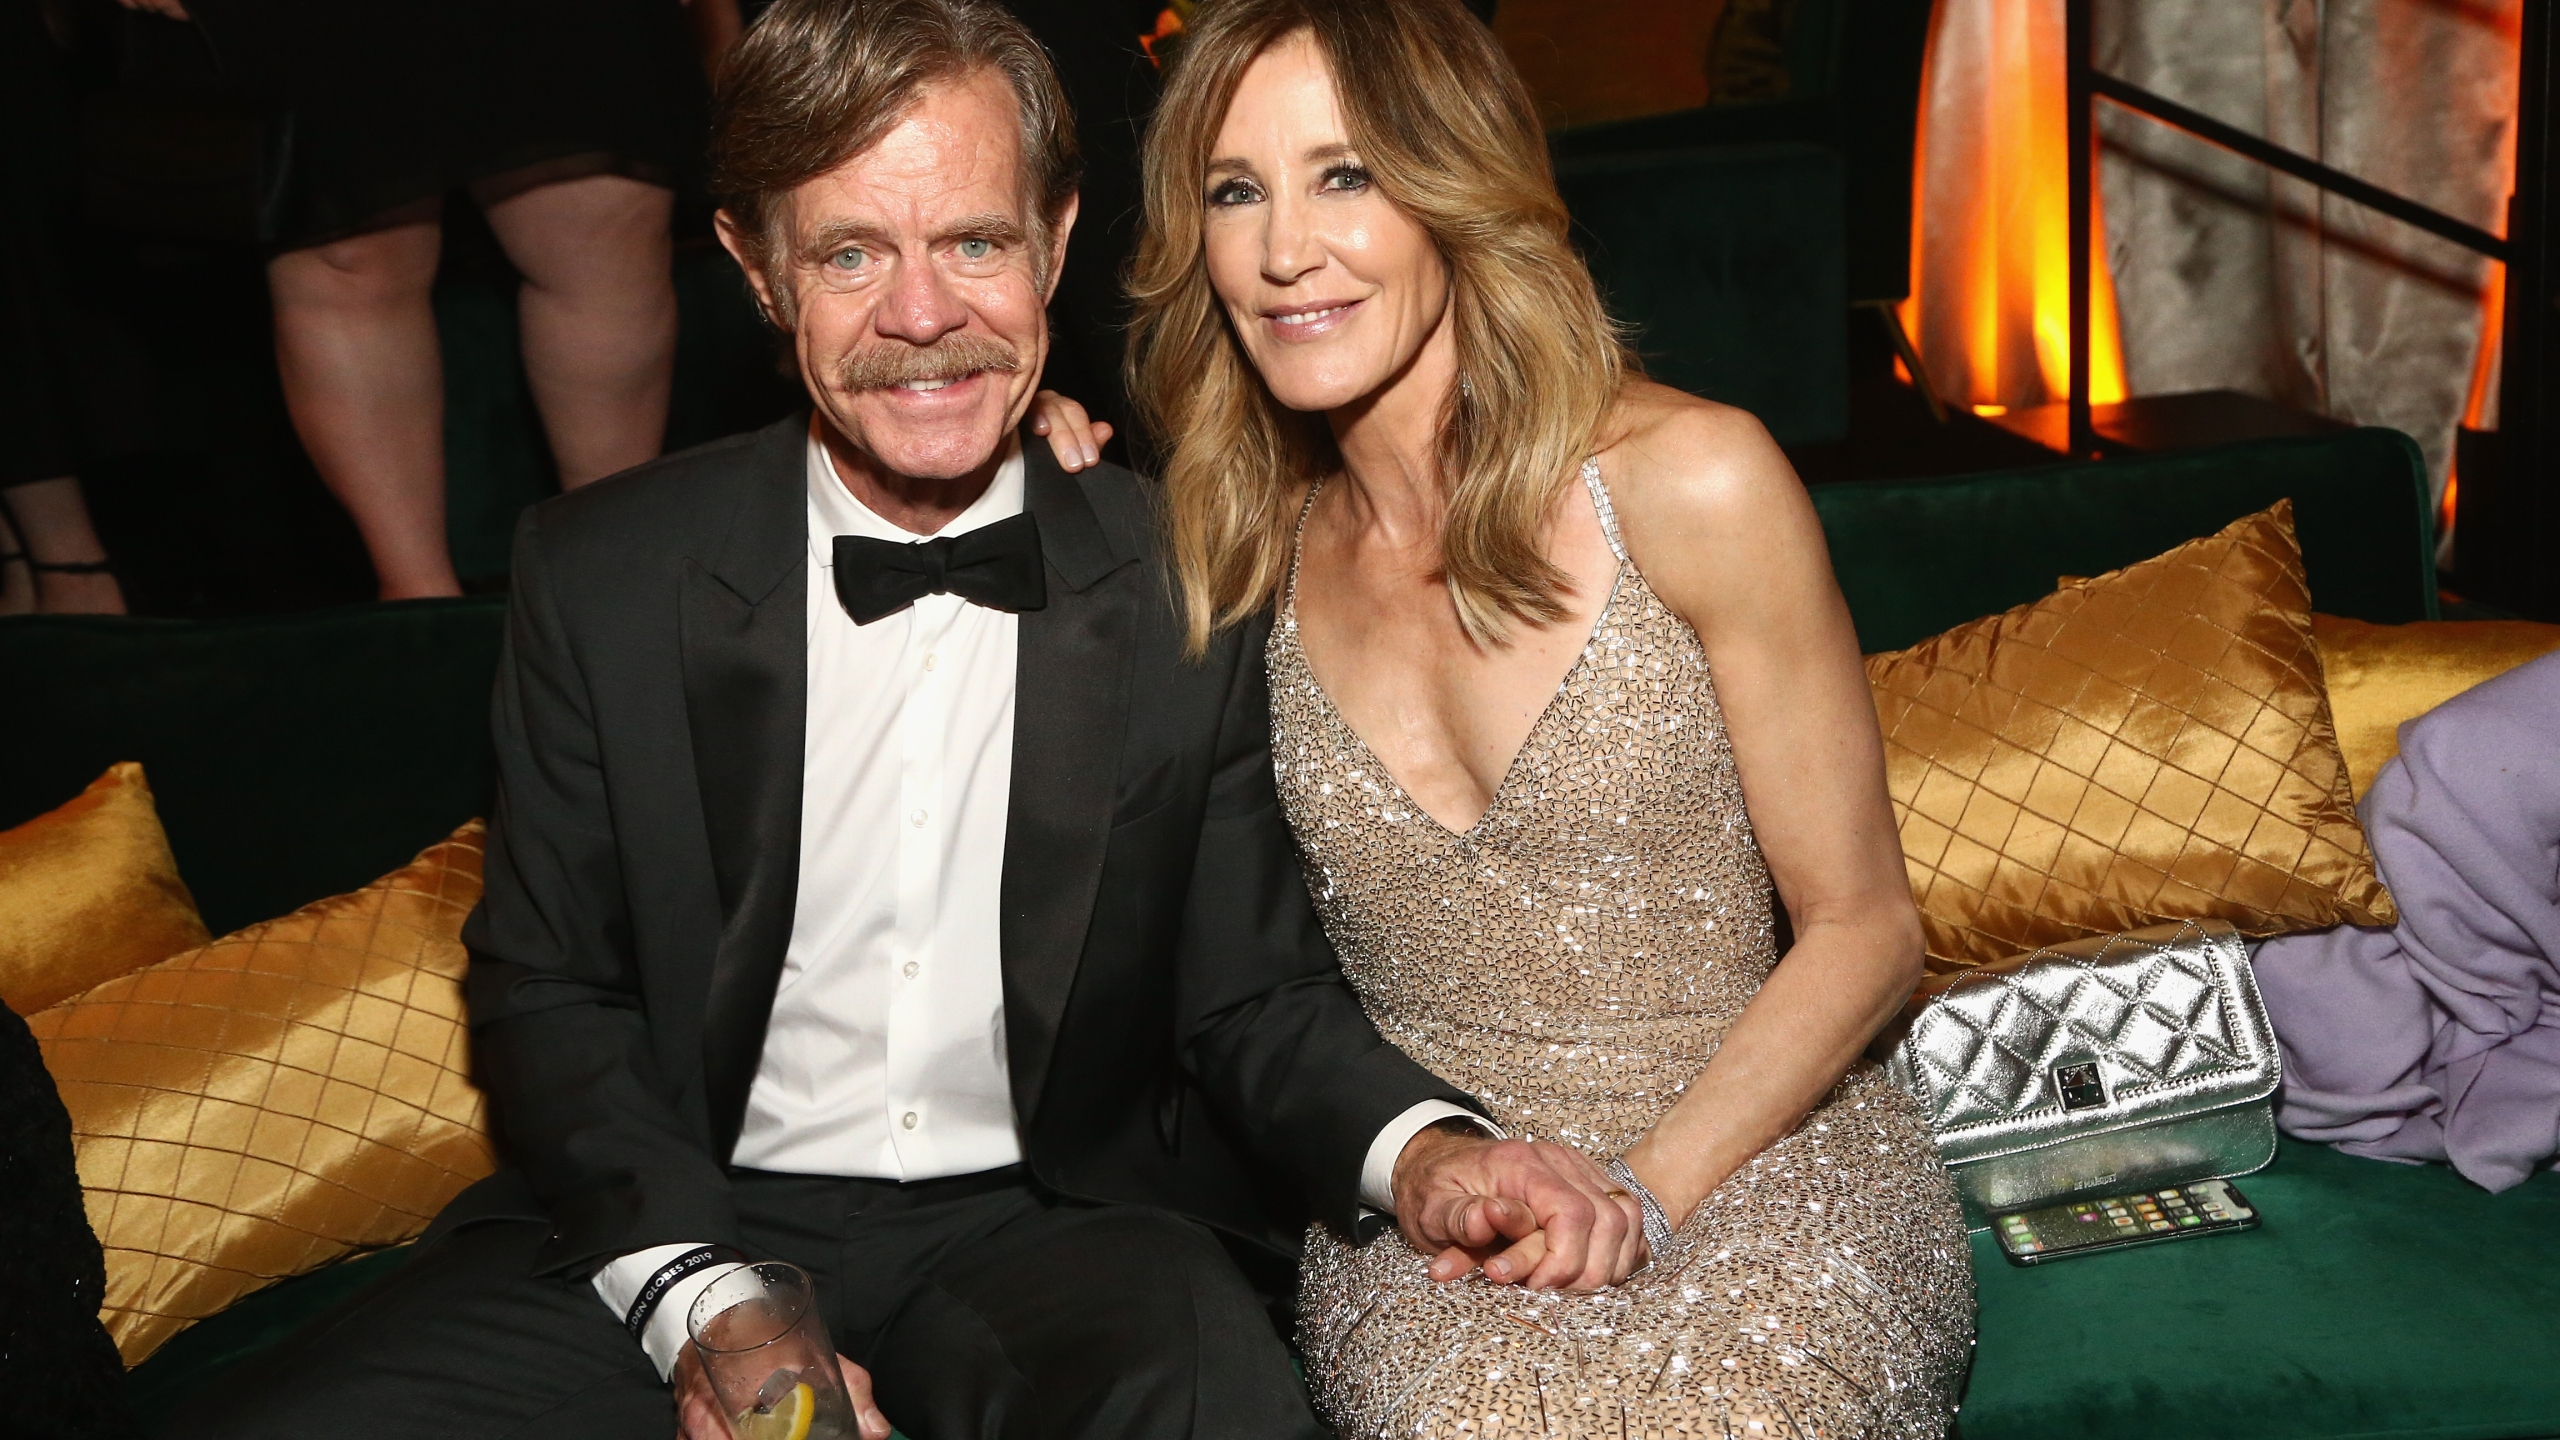 Felicity Huffman, right, and William H. Macy attend the Netflix 2019 Golden Globes After Party in Los Angeles on Jan. 6, 2019. (Credit: Tommaso Boddi / Getty Images for Netflix)